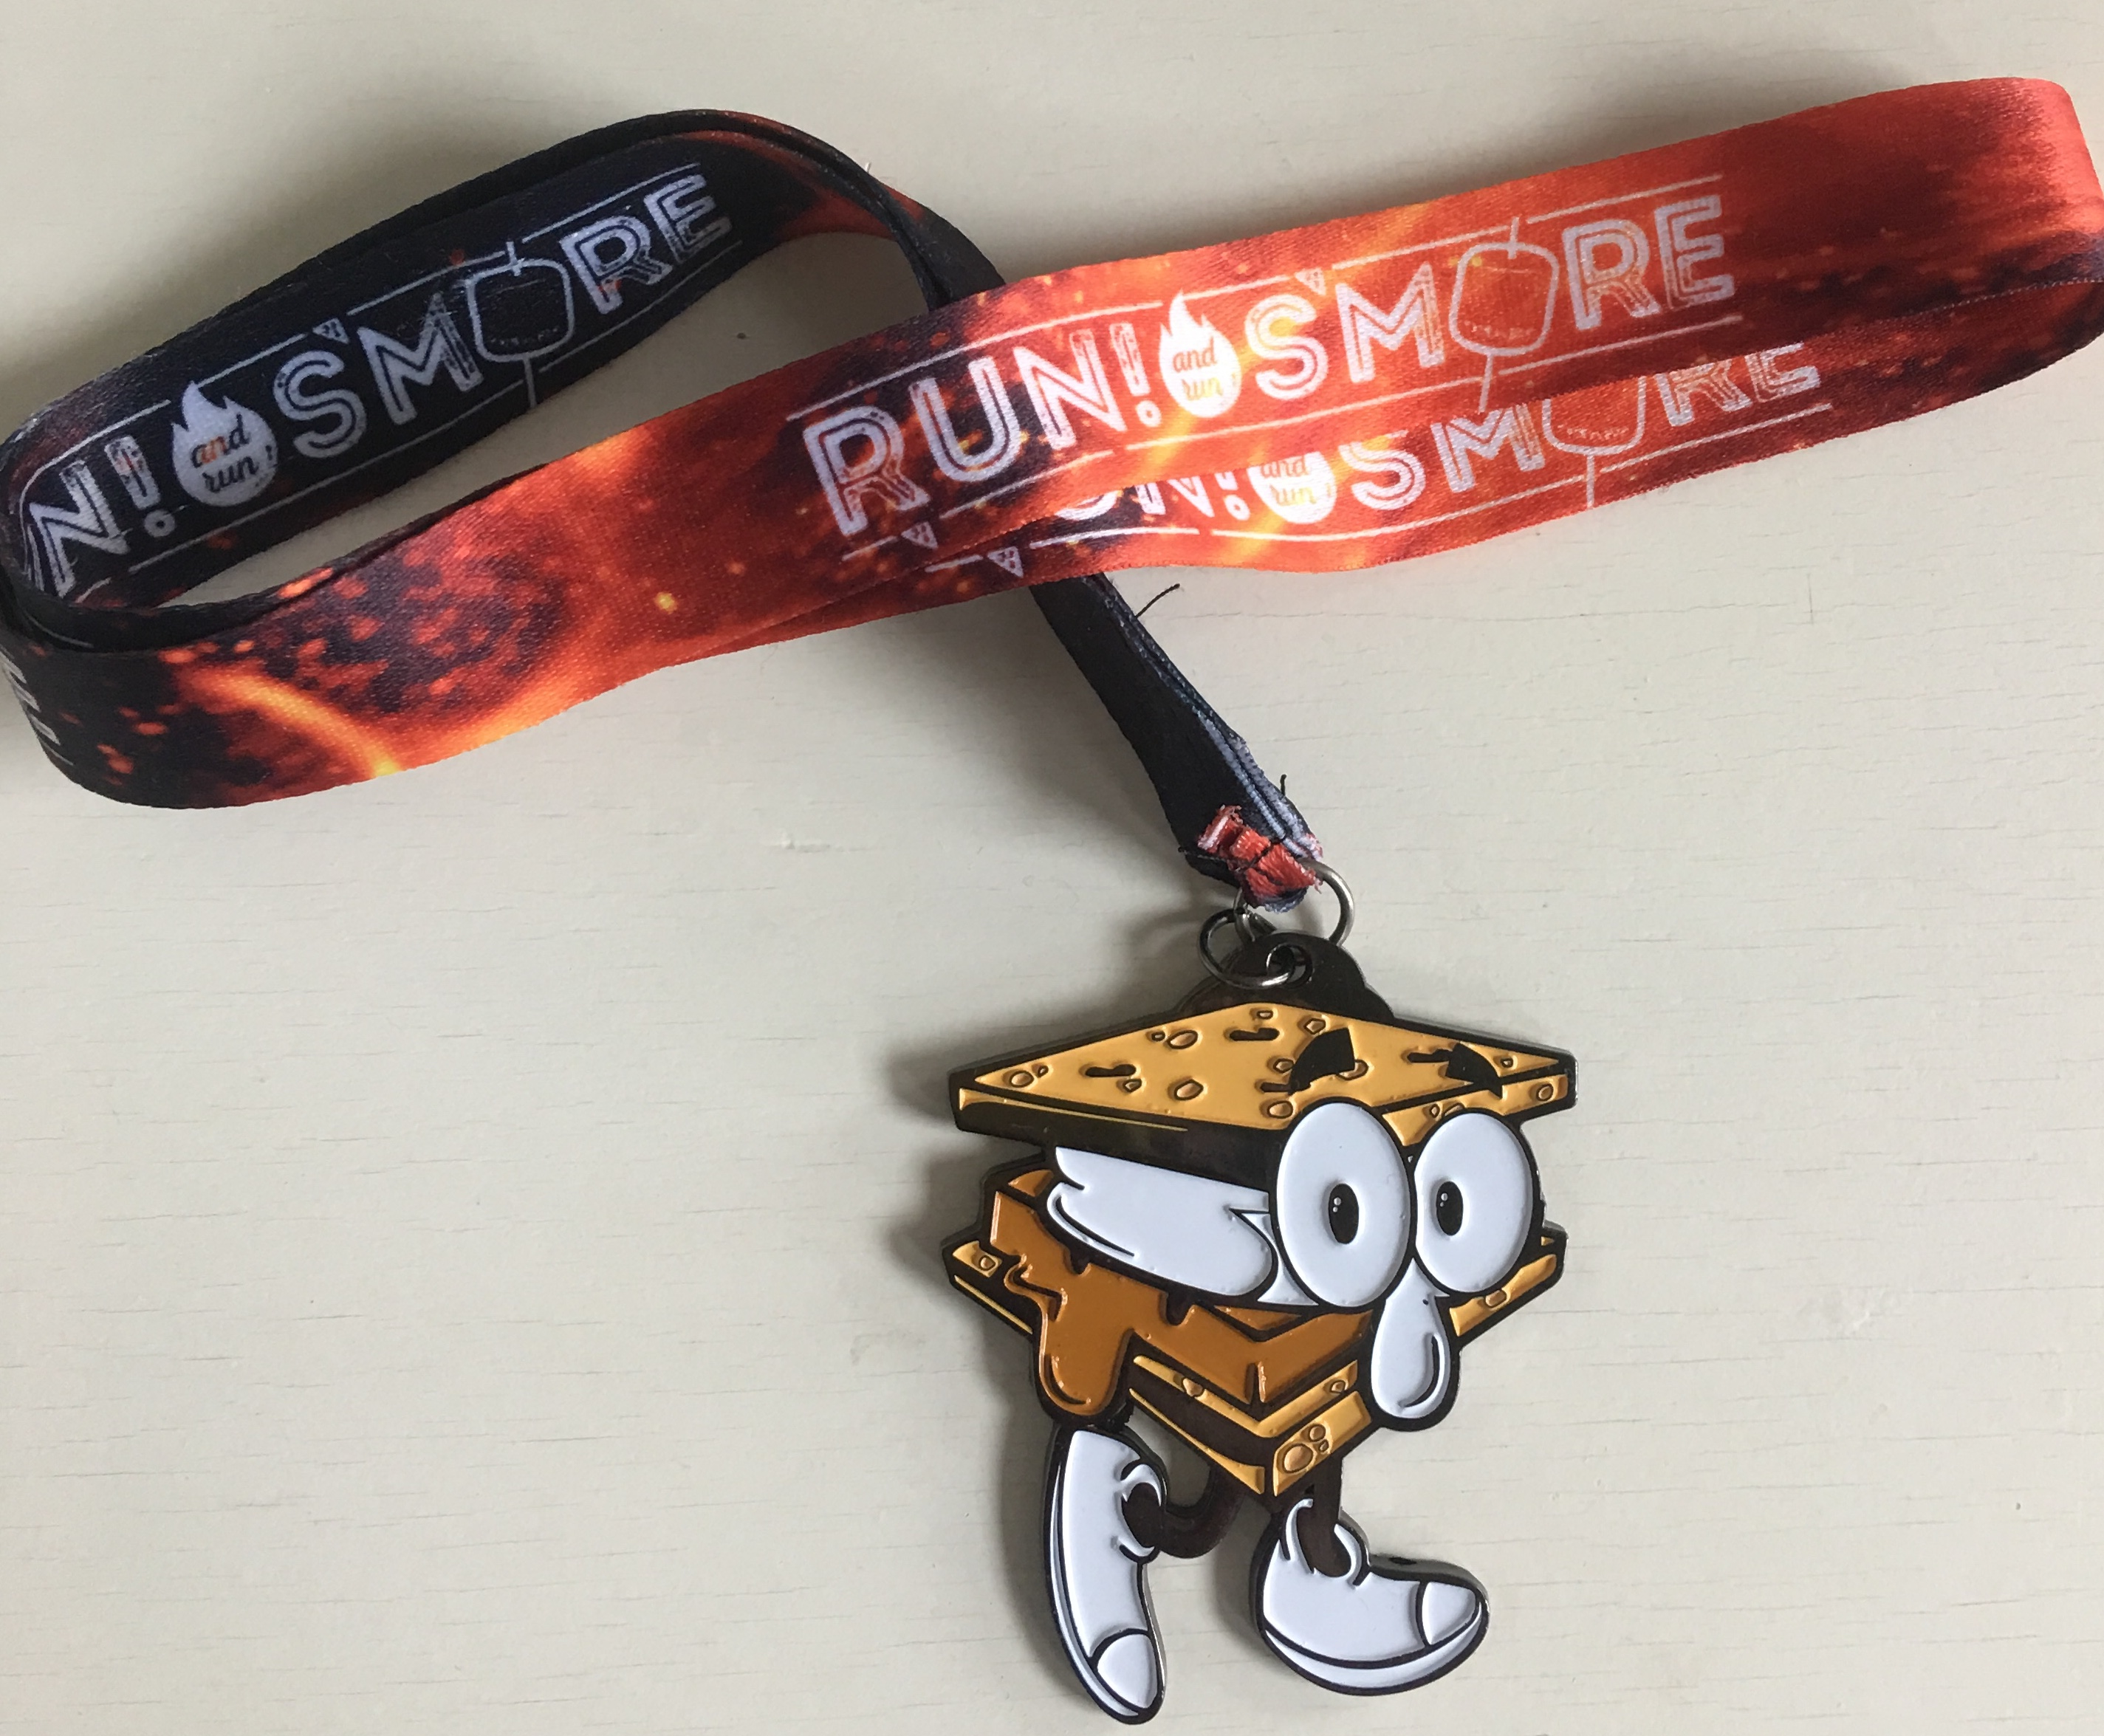 Sammie Smore medal and lanyard